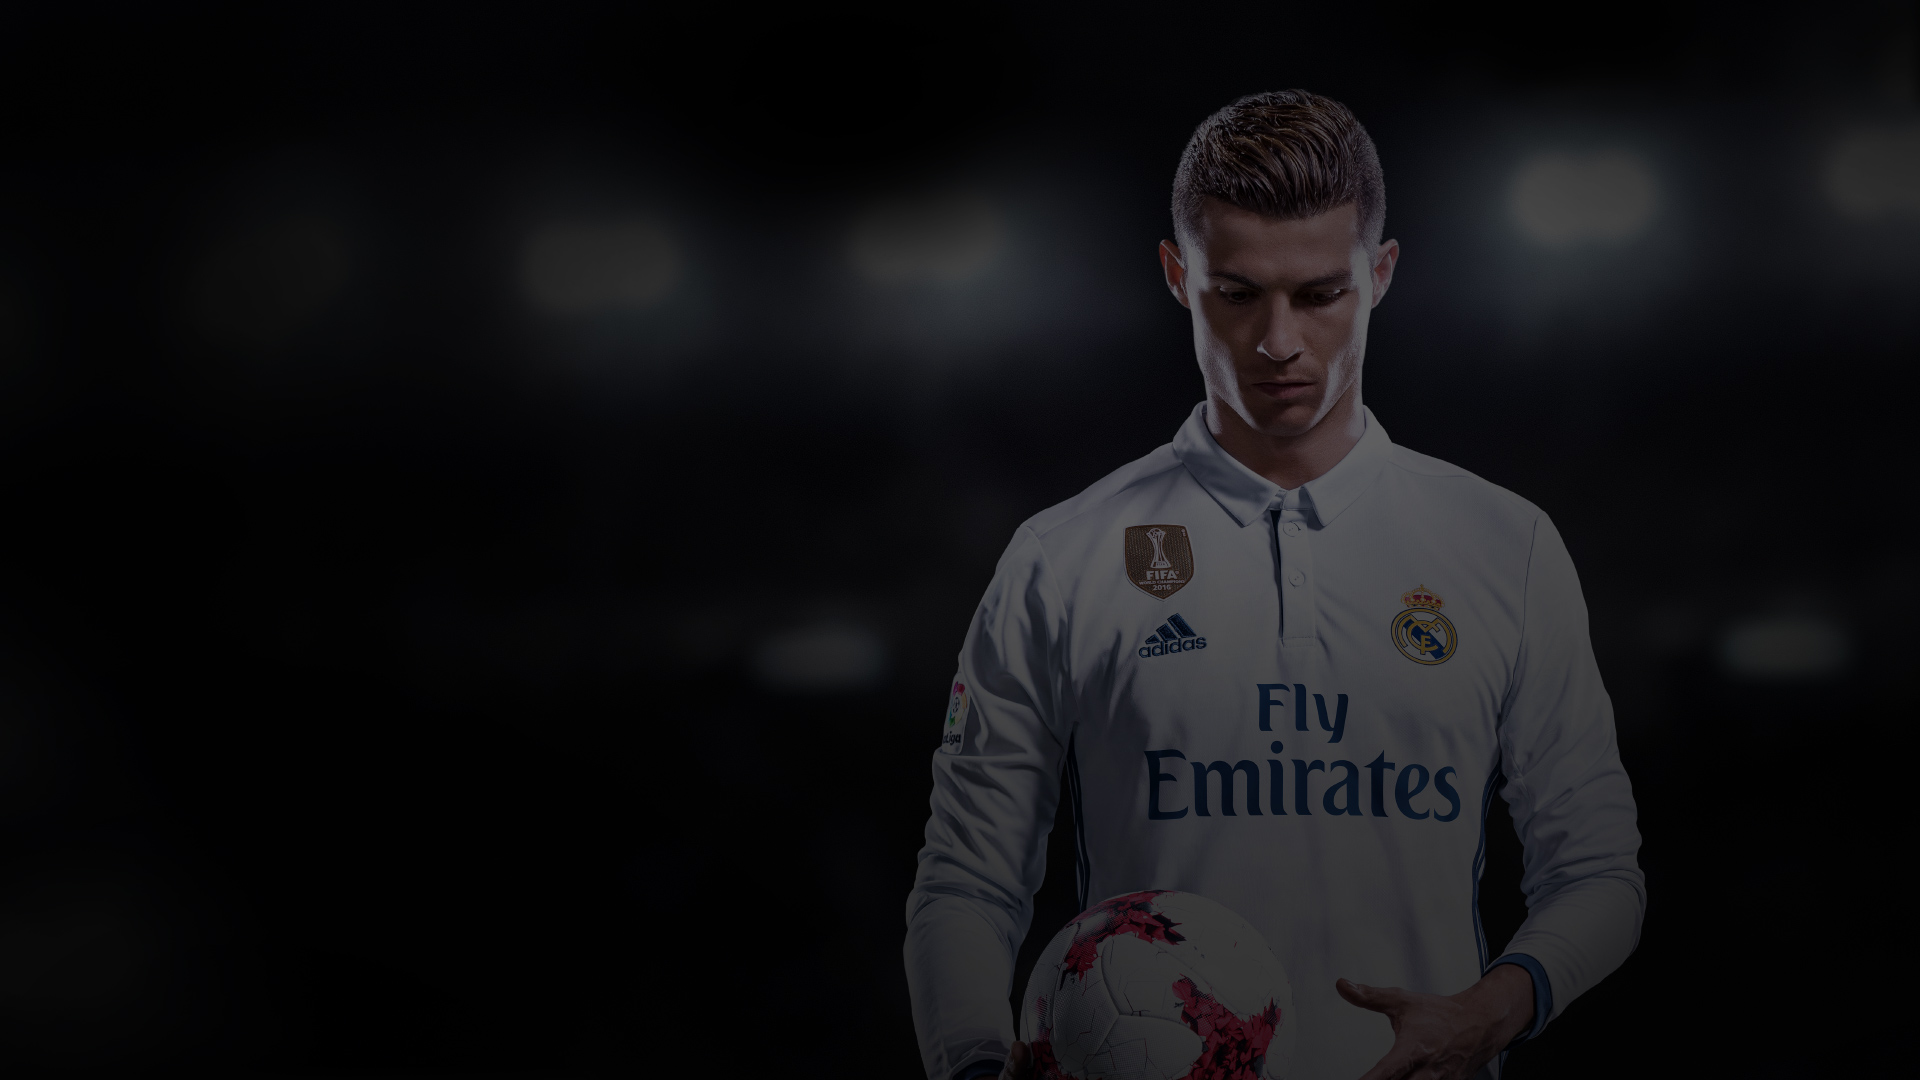 Download FIFA 18 HD Wallpapers 1920x1080 Playstation